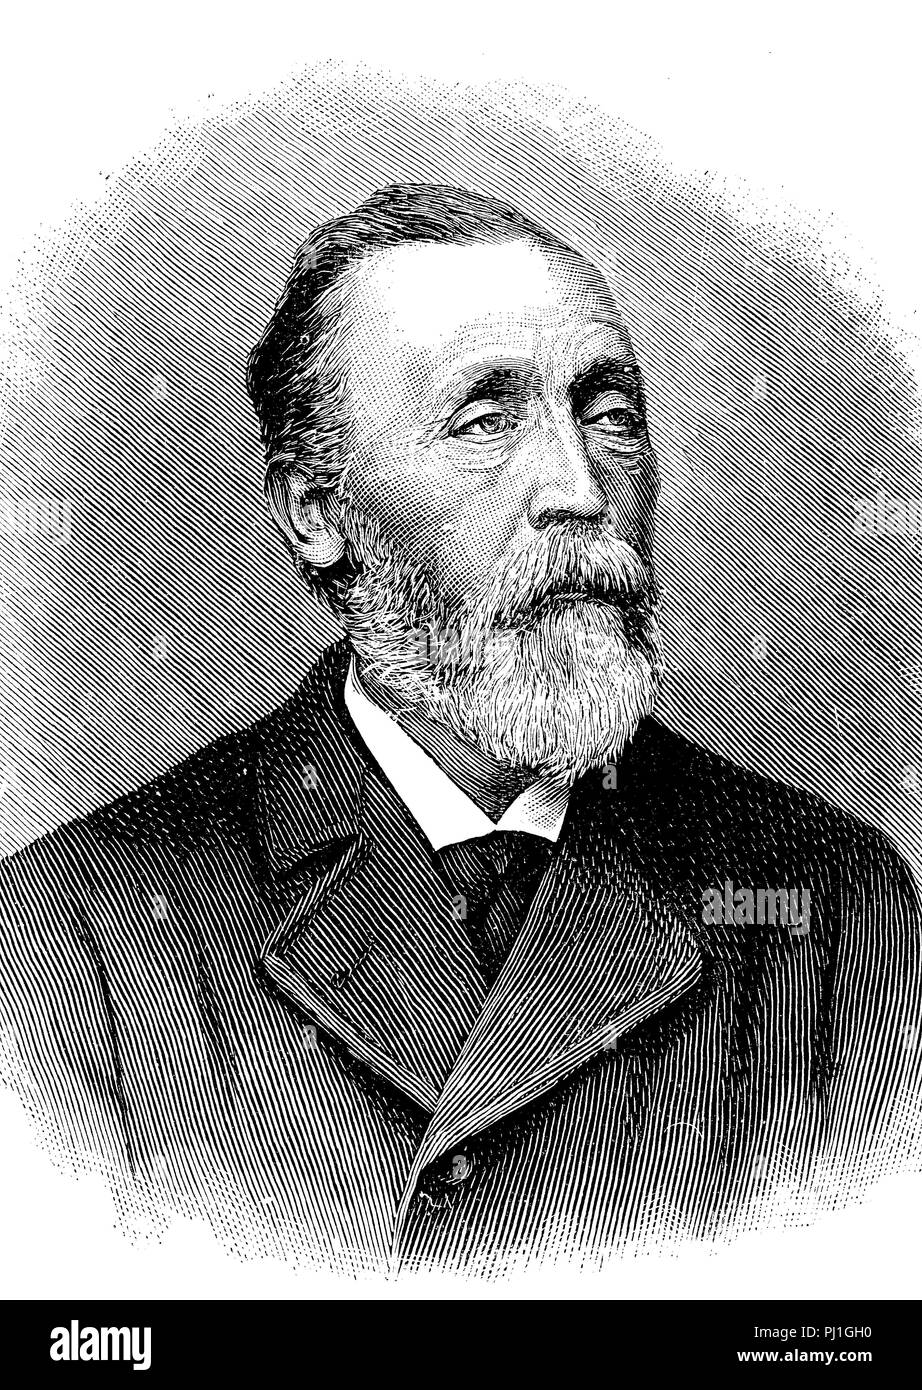 Heinrich von Stephan, Ernst Heinrich Wilhelm Stephan, January 7, 1831 – April 8, 1897, general post director for the German Empire, digital improved reproduction of an woodprint from the year 1890 Stock Photo